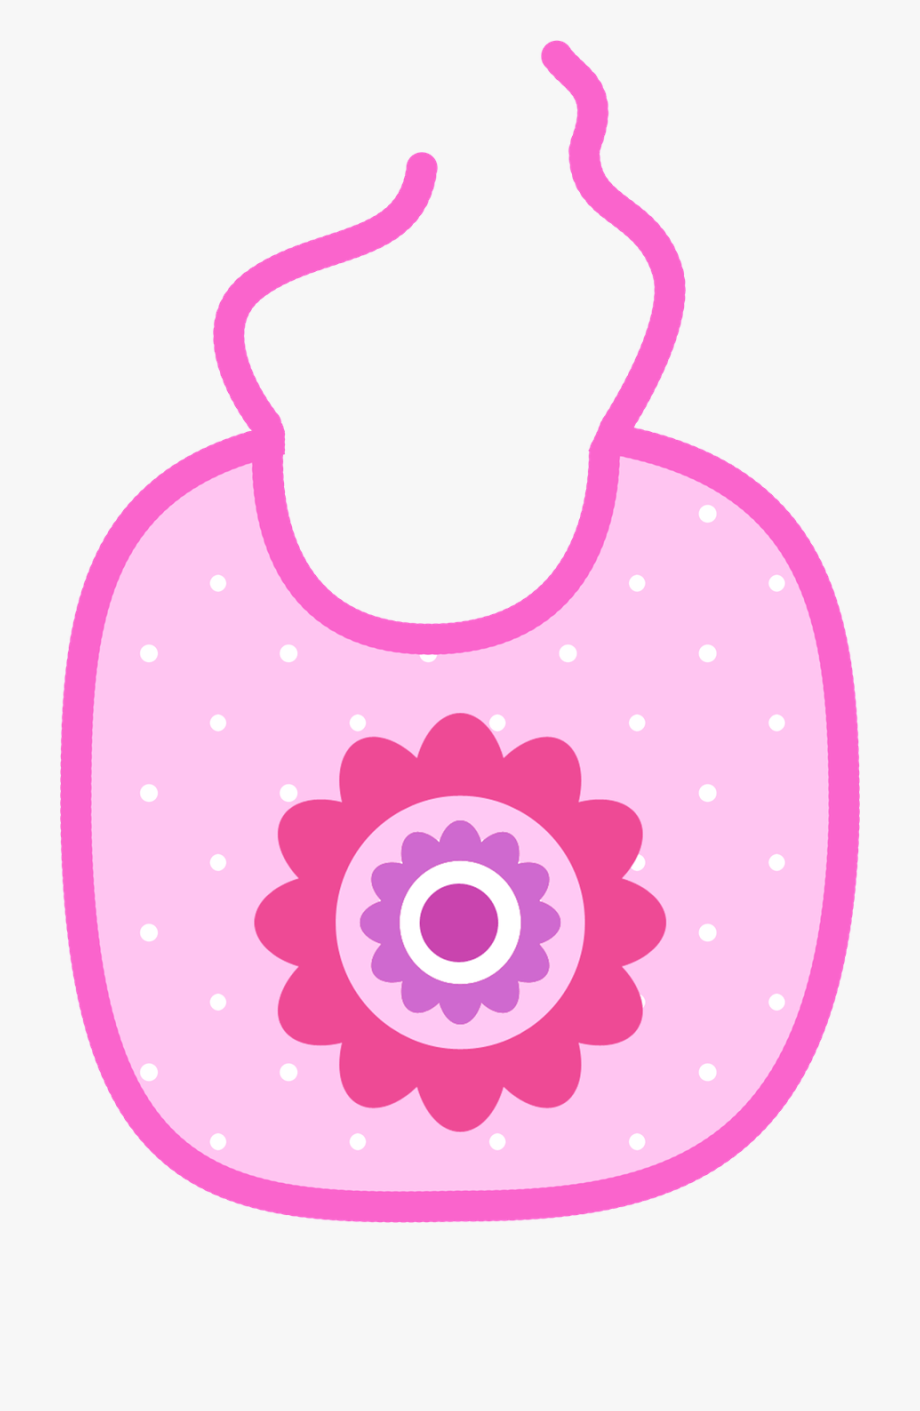 Baby Girl Bibs Png Transparent Baby Girl Bibs.